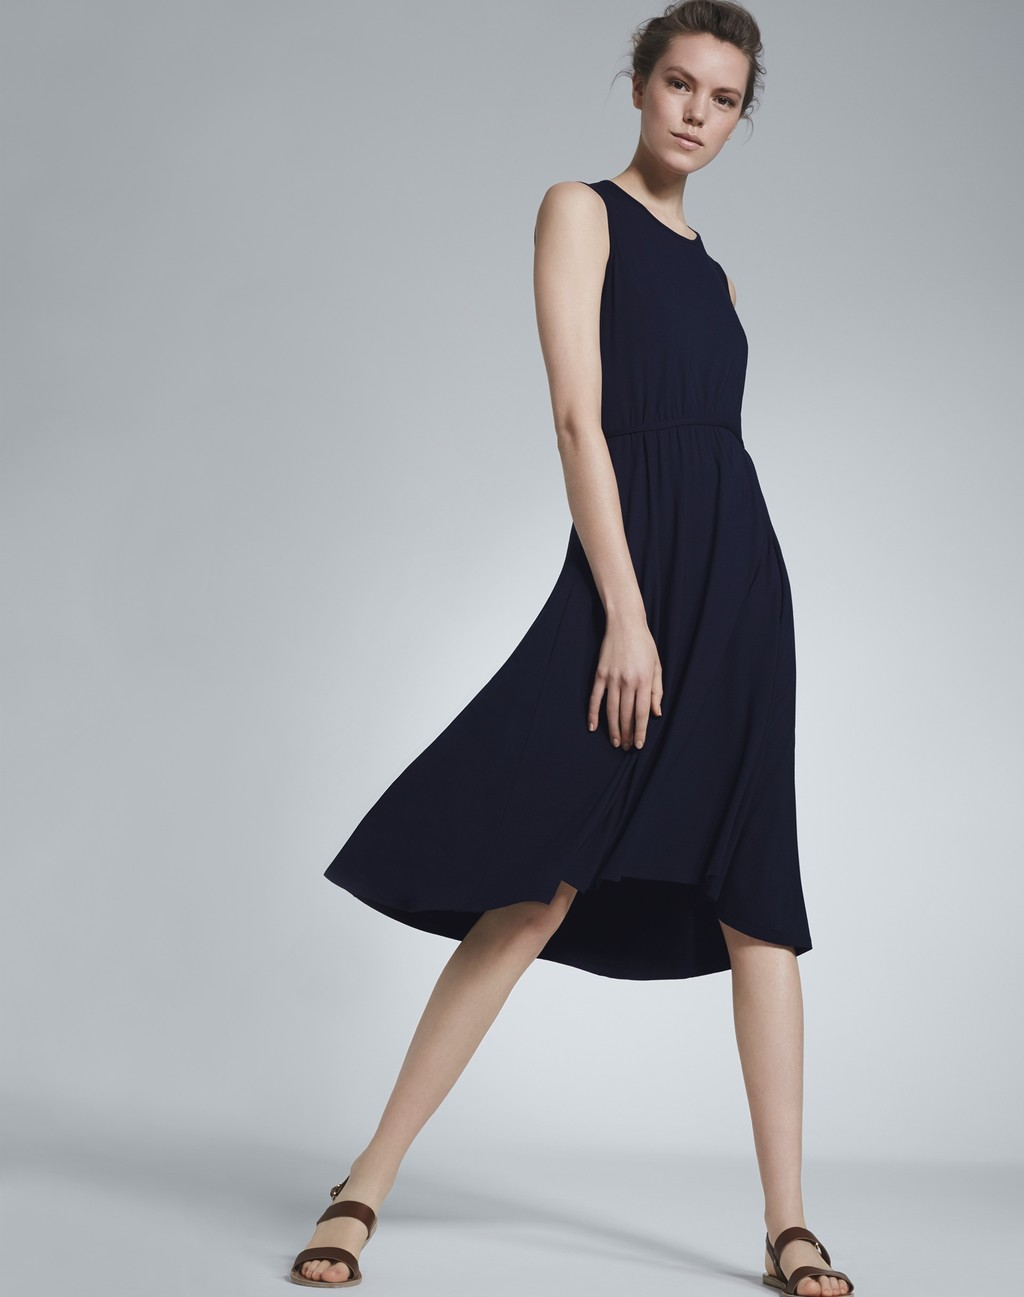 Tie Waist Summer Dress Navy - neckline: round neck; pattern: plain; sleeve style: sleeveless; waist detail: fitted waist; predominant colour: navy; occasions: casual, holiday; length: on the knee; fit: fitted at waist & bust; style: fit & flare; fibres: polyester/polyamide - 100%; hip detail: soft pleats at hip/draping at hip/flared at hip; sleeve length: sleeveless; texture group: crepes; pattern type: fabric; season: s/s 2016